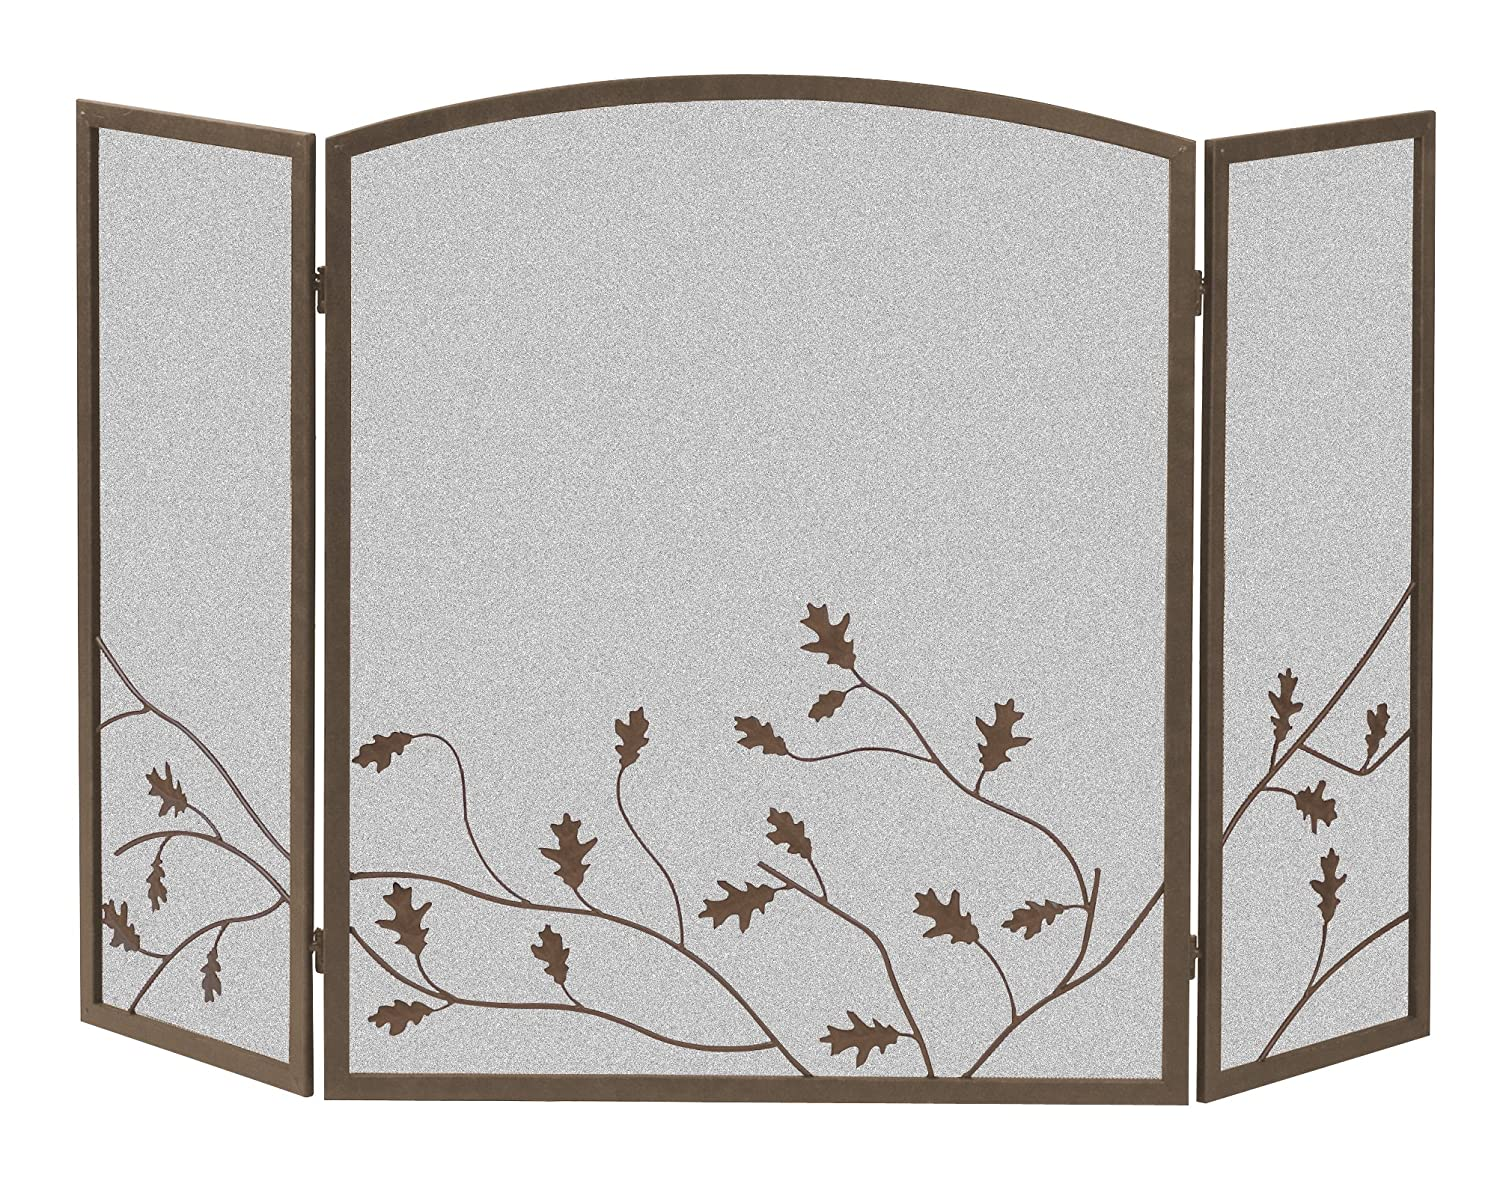 Panacea Products 15914 3 Panel Oak Leaf Fireplace Screen New Free Shipping